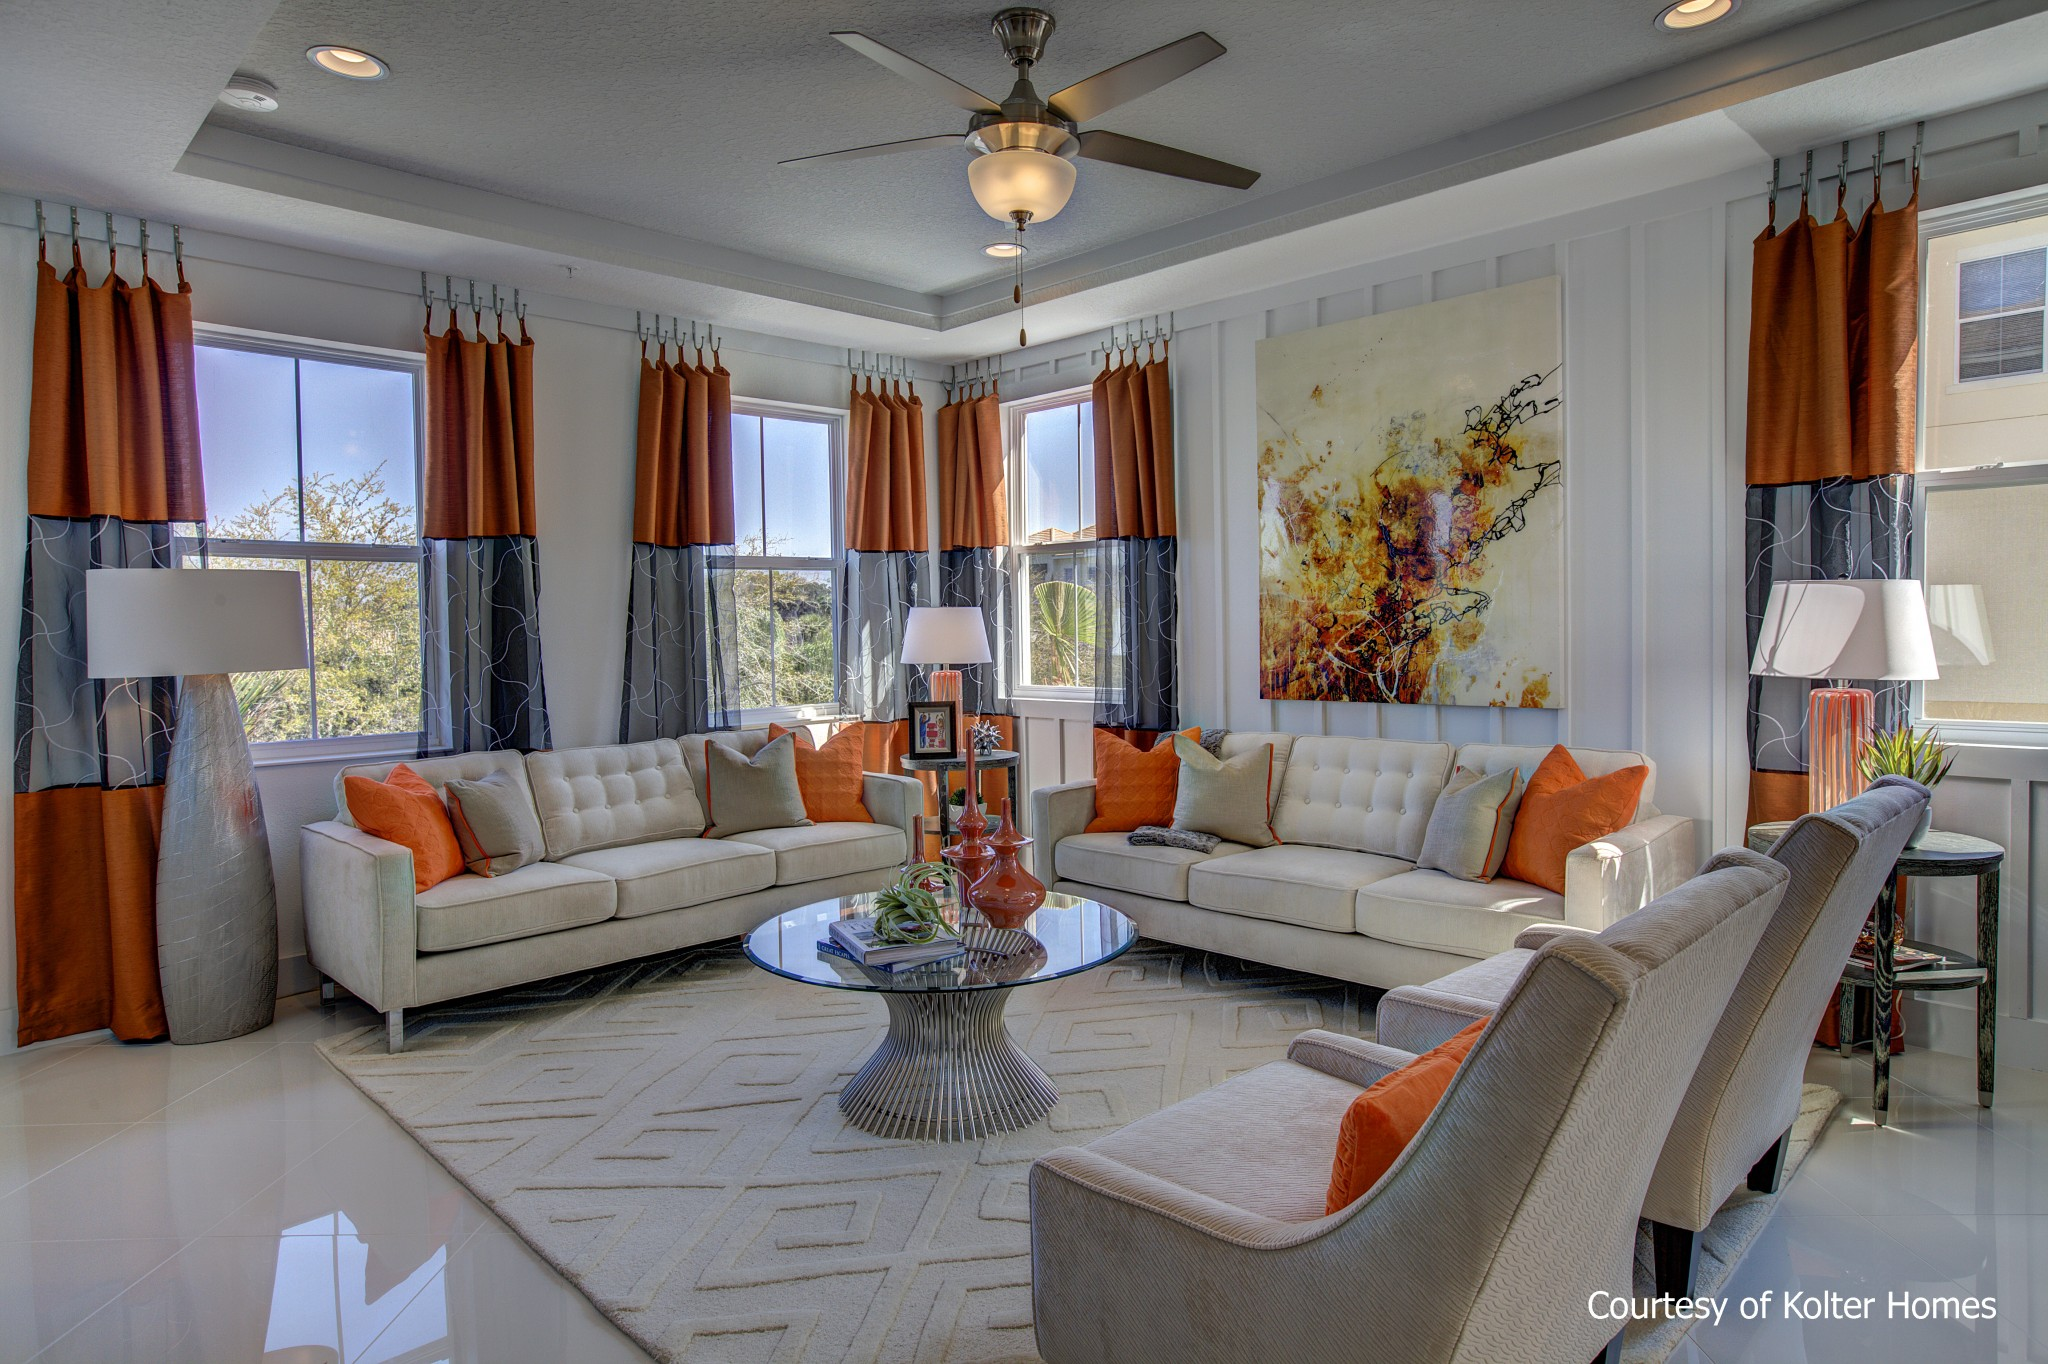 Grande Oaks at Heathrow - Kolter Homes - Evergreen Model | Design ...